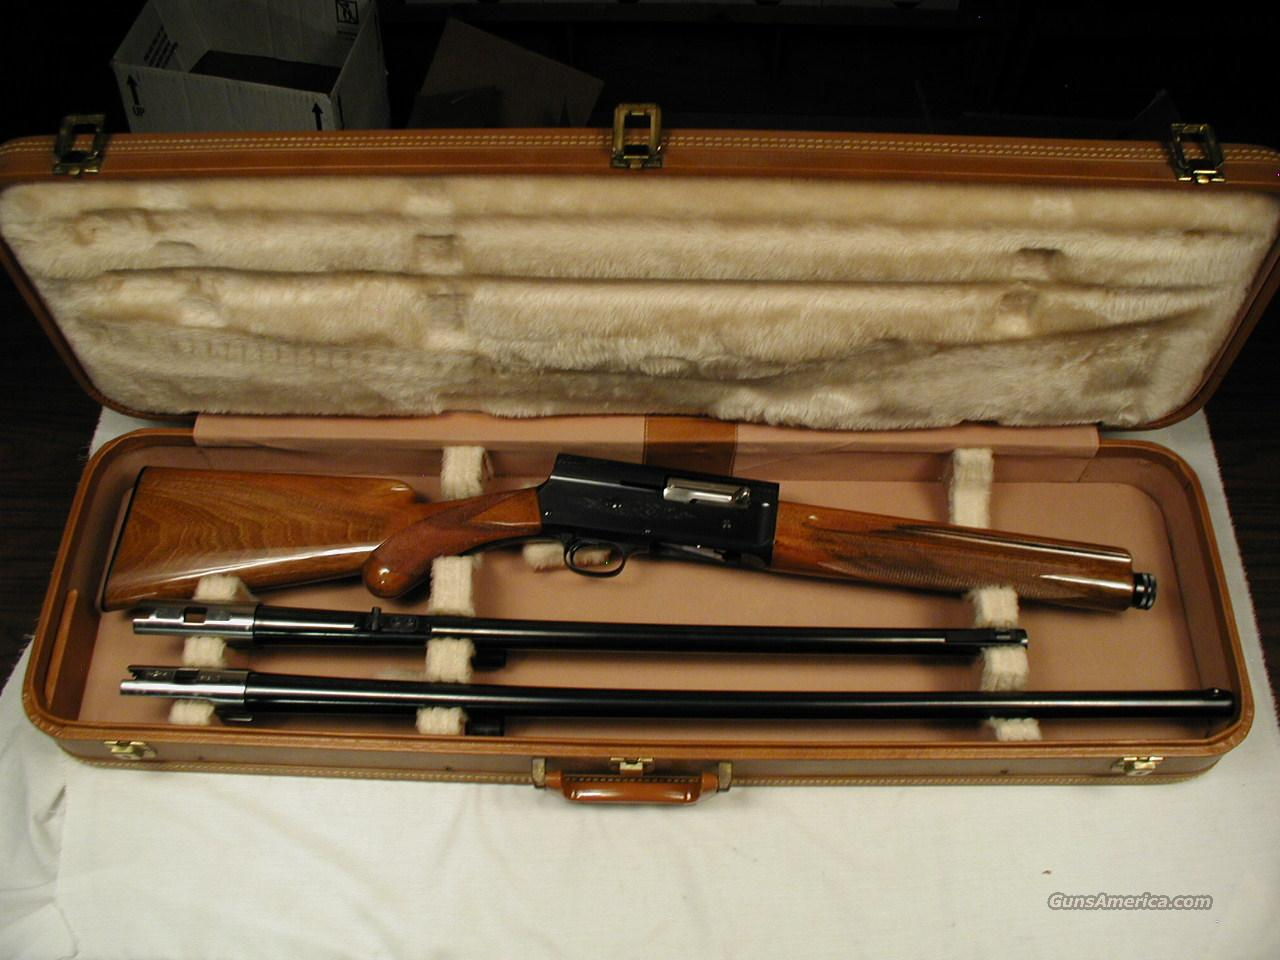 1963 MADE A5 BELGIUM BROWNING CASED COMBO WITH ROUND KNOB  Guns > Shotguns > Browning Shotguns > Autoloaders > Hunting